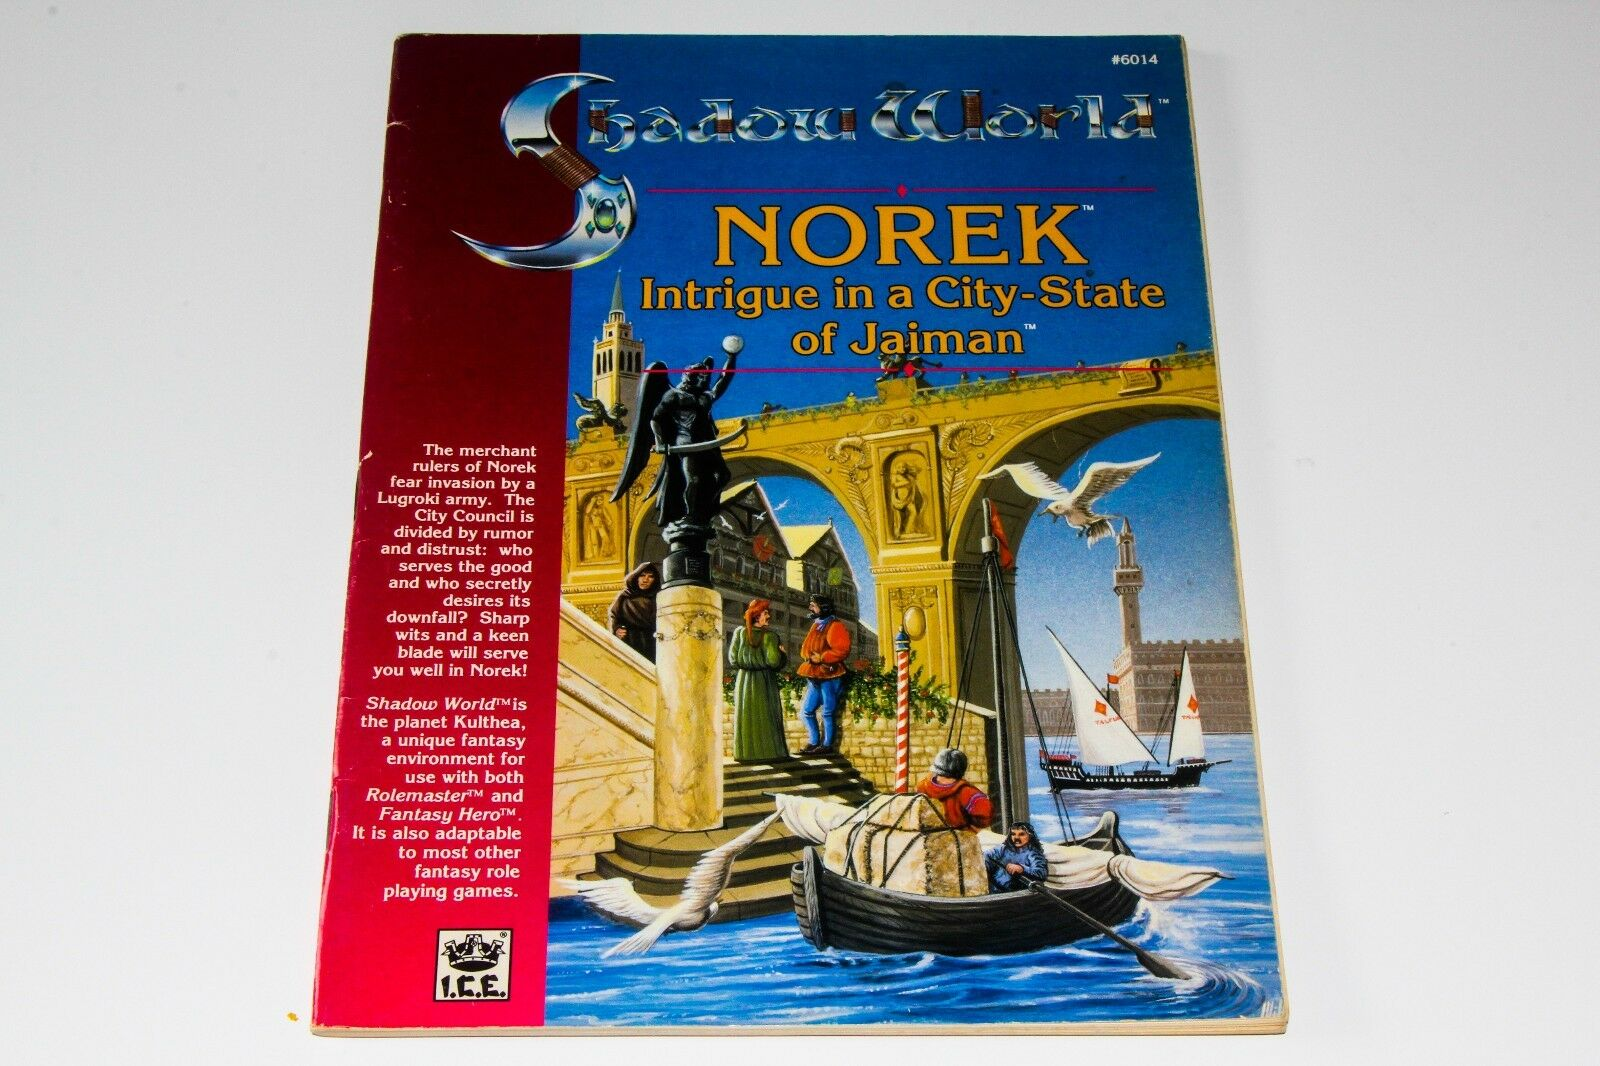 ROLEMASTER - SHADOW WORLD - NOREK INTRIGUE IN A CITY-STATE OF JAIMAN